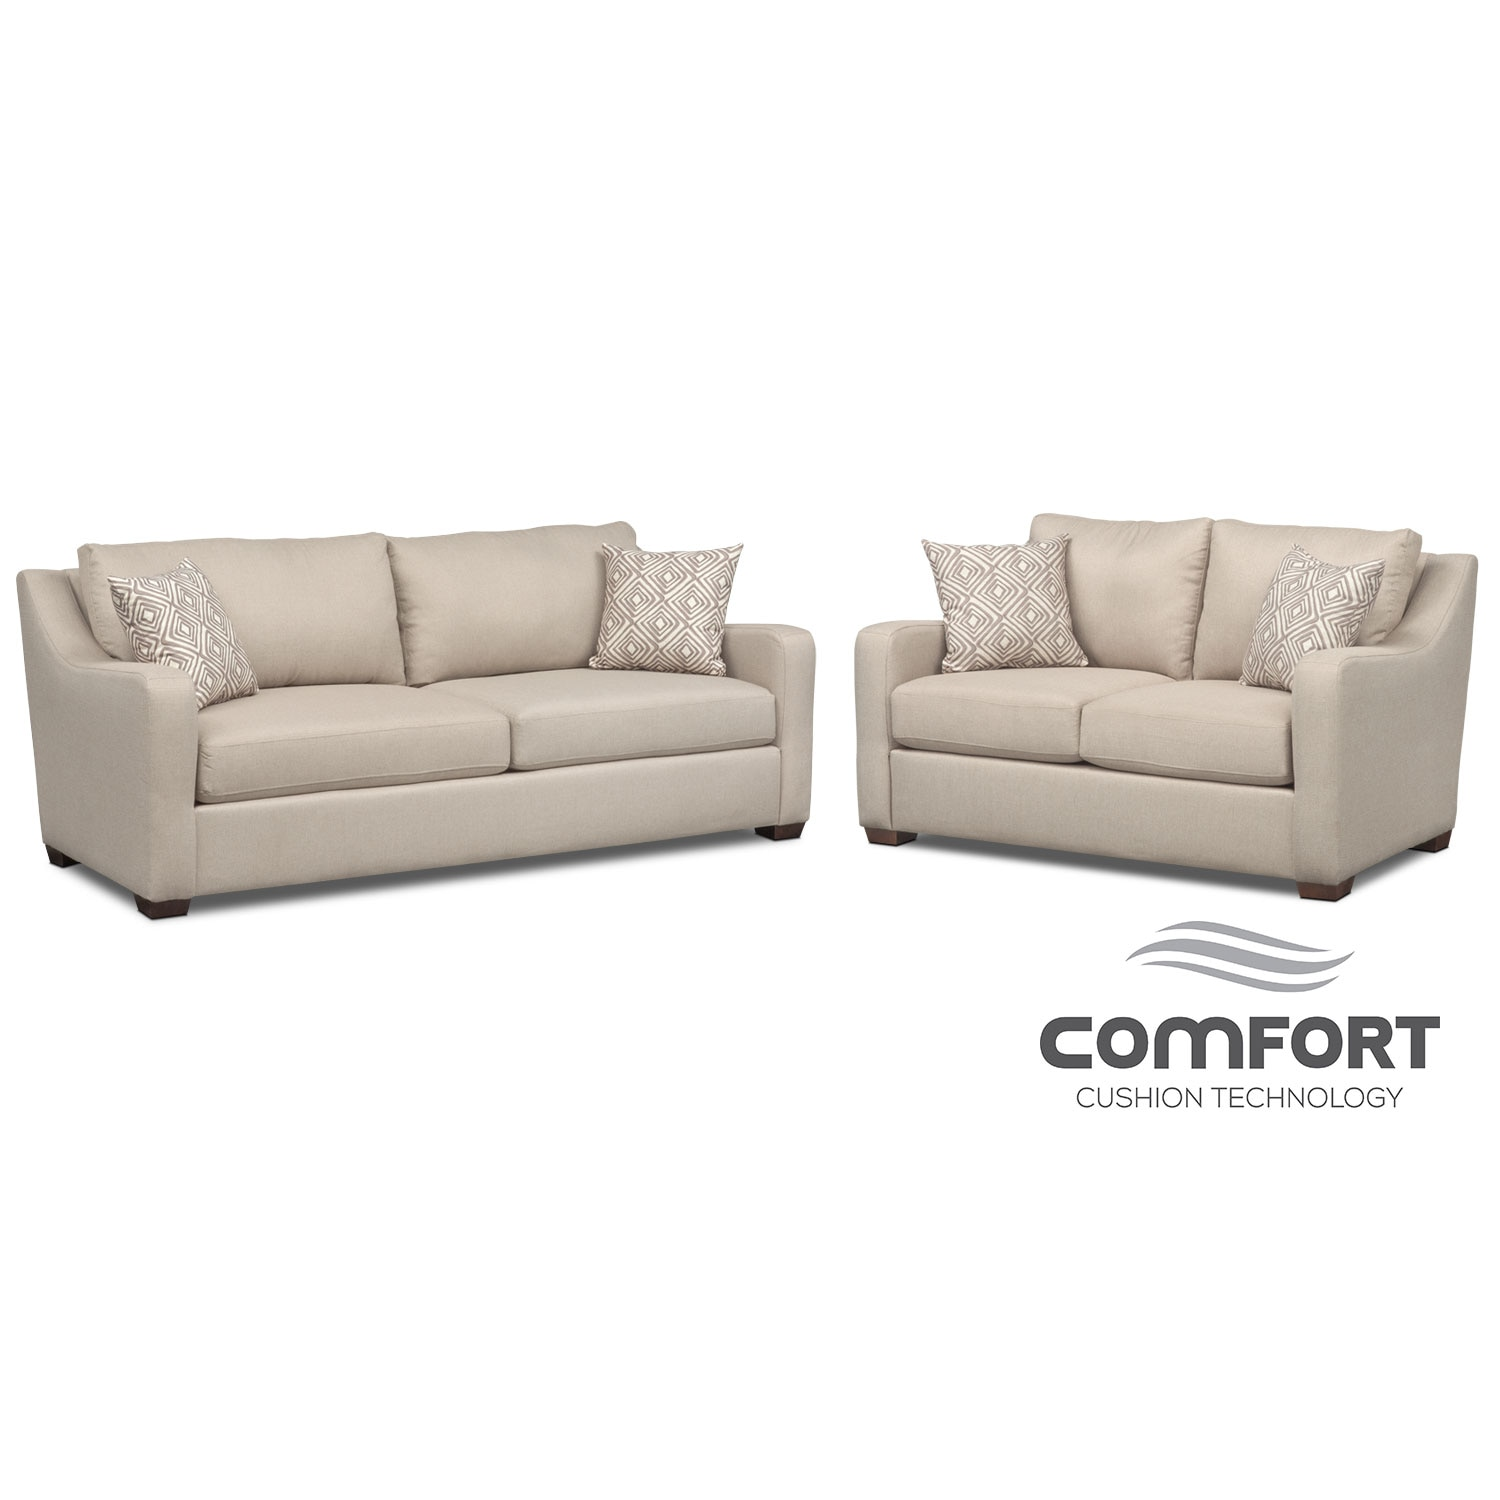 Living Room Furniture - Jules Comfort Sofa and Loveseat Set - Cream